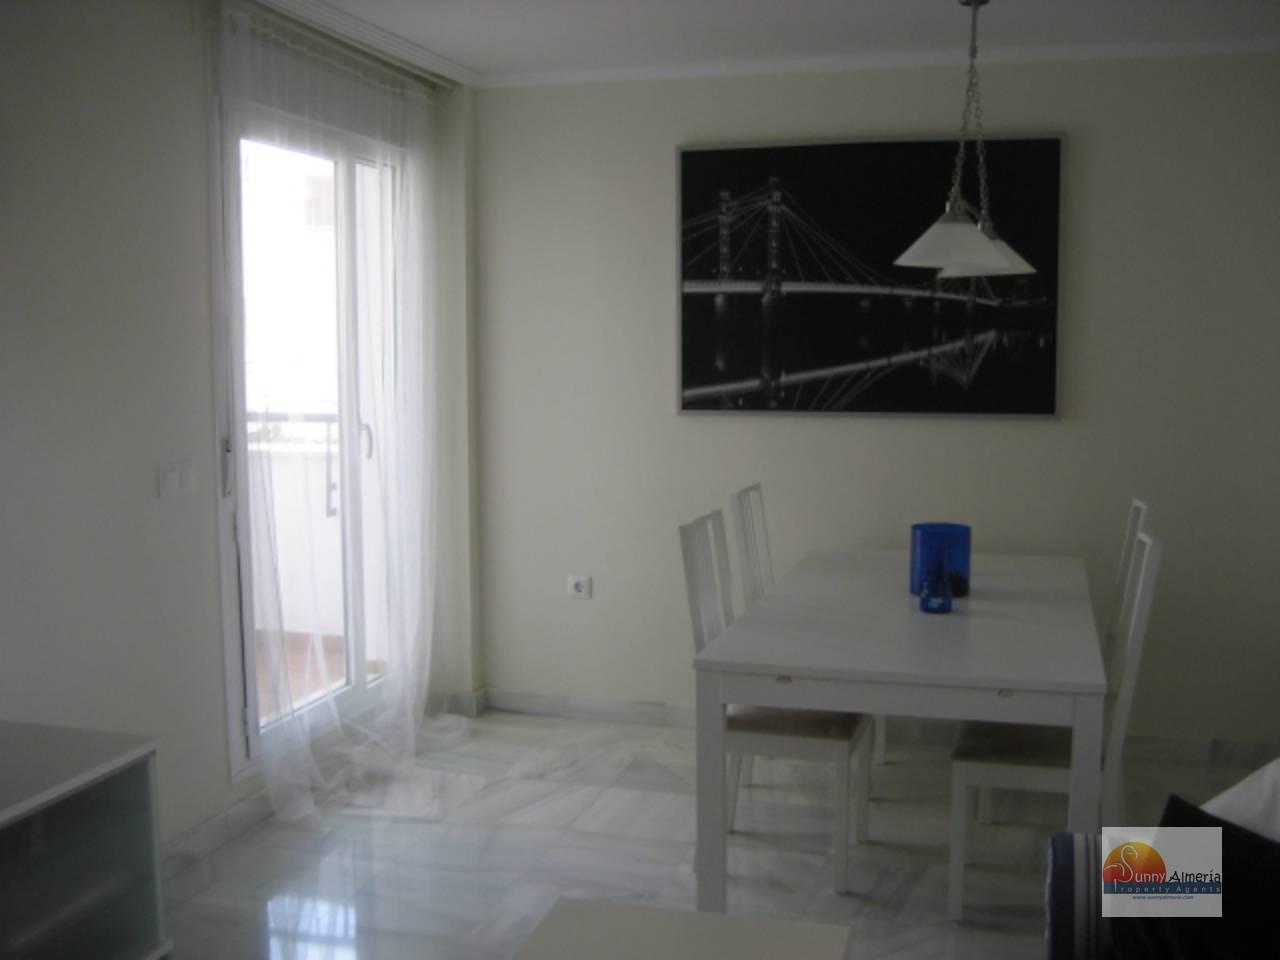 Apartment for rent in Carretera Ciudad de Cadiz 1A (Roquetas de Mar), 700 €/month